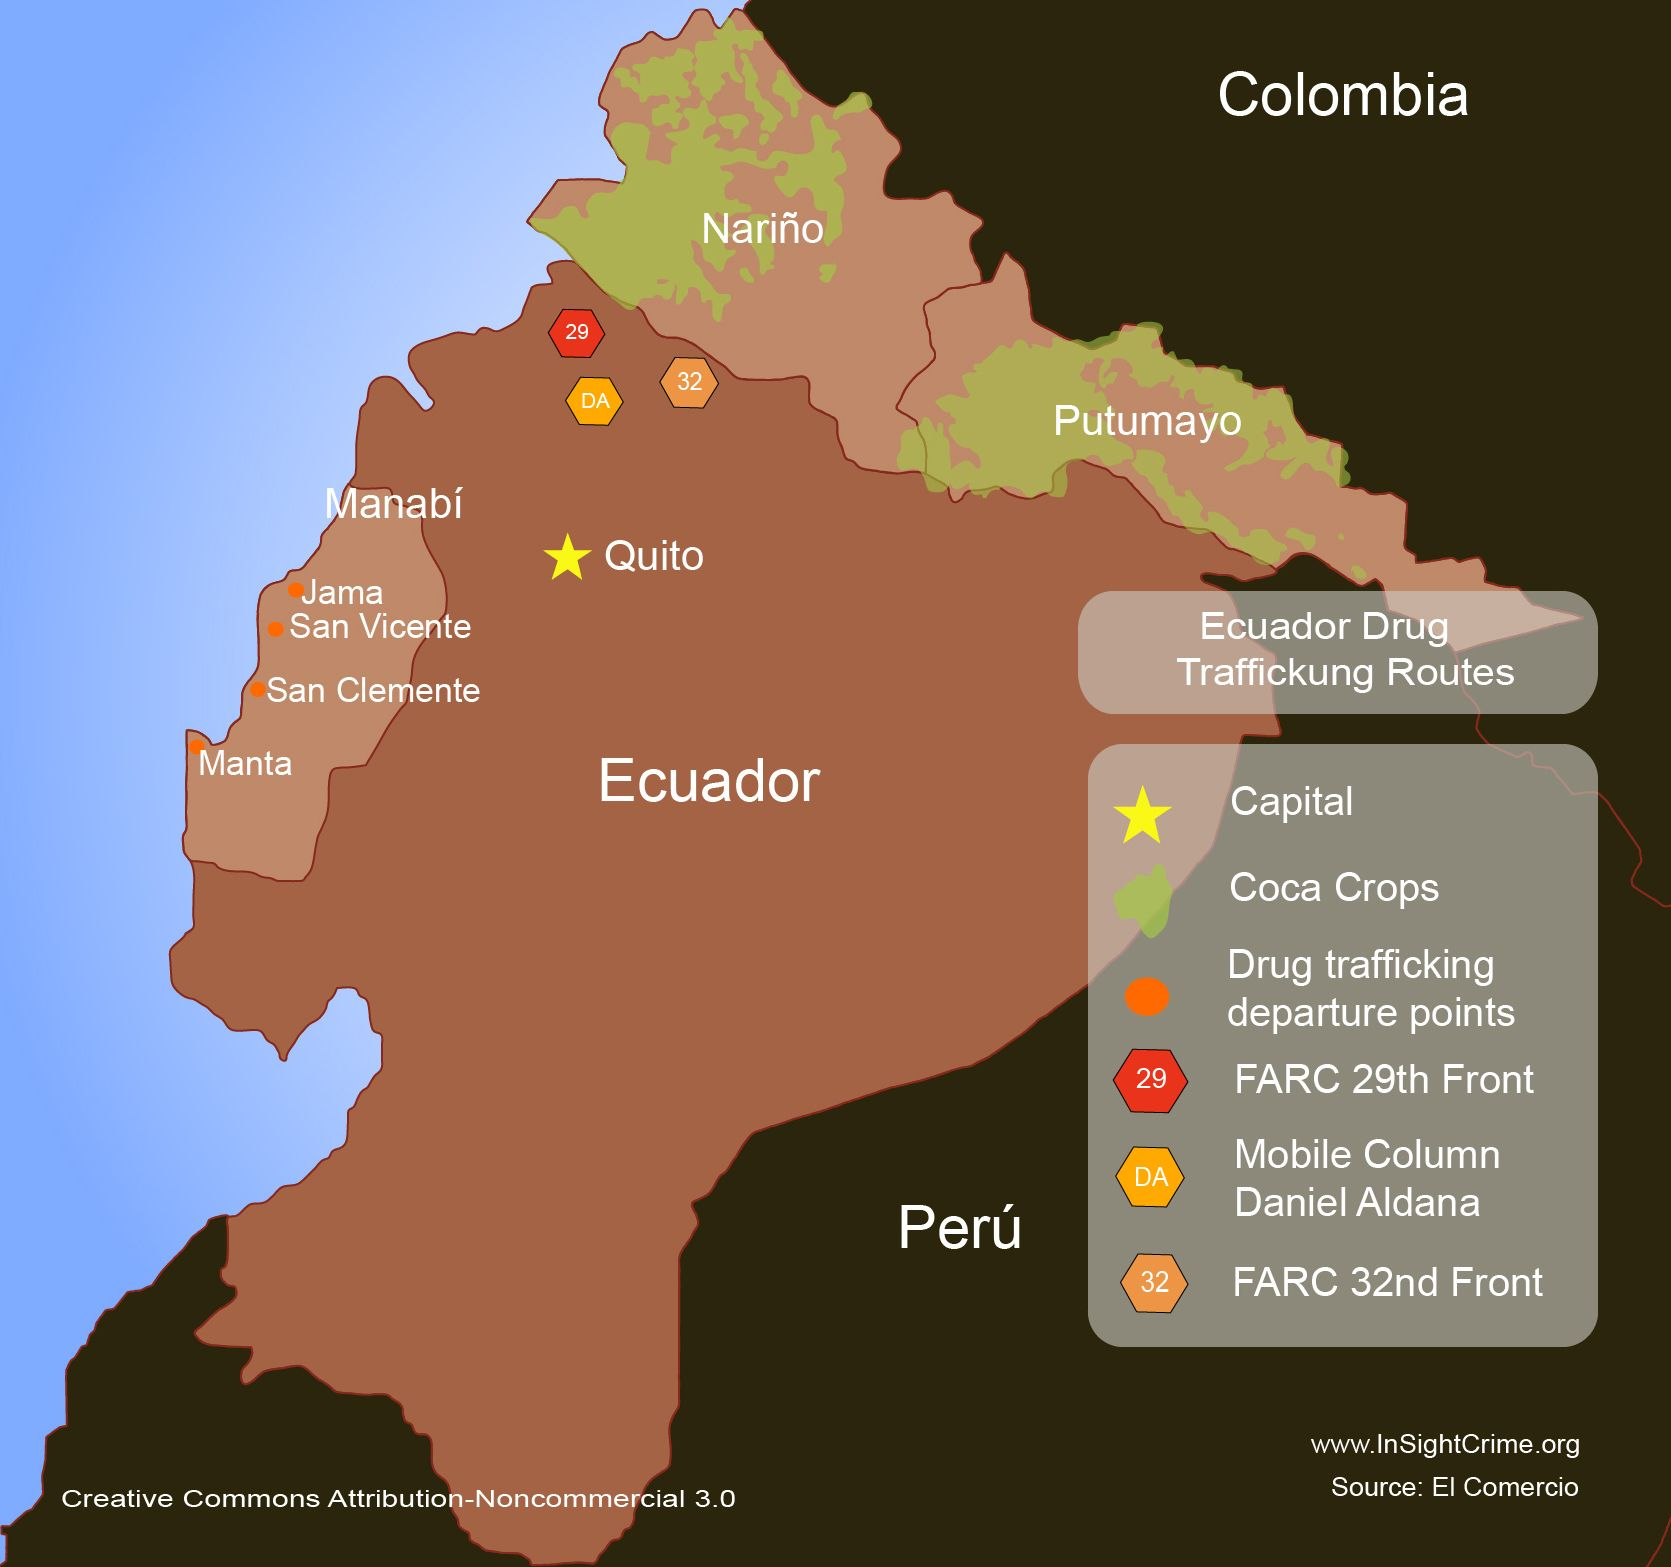 Ecuador drug trafficking routes1